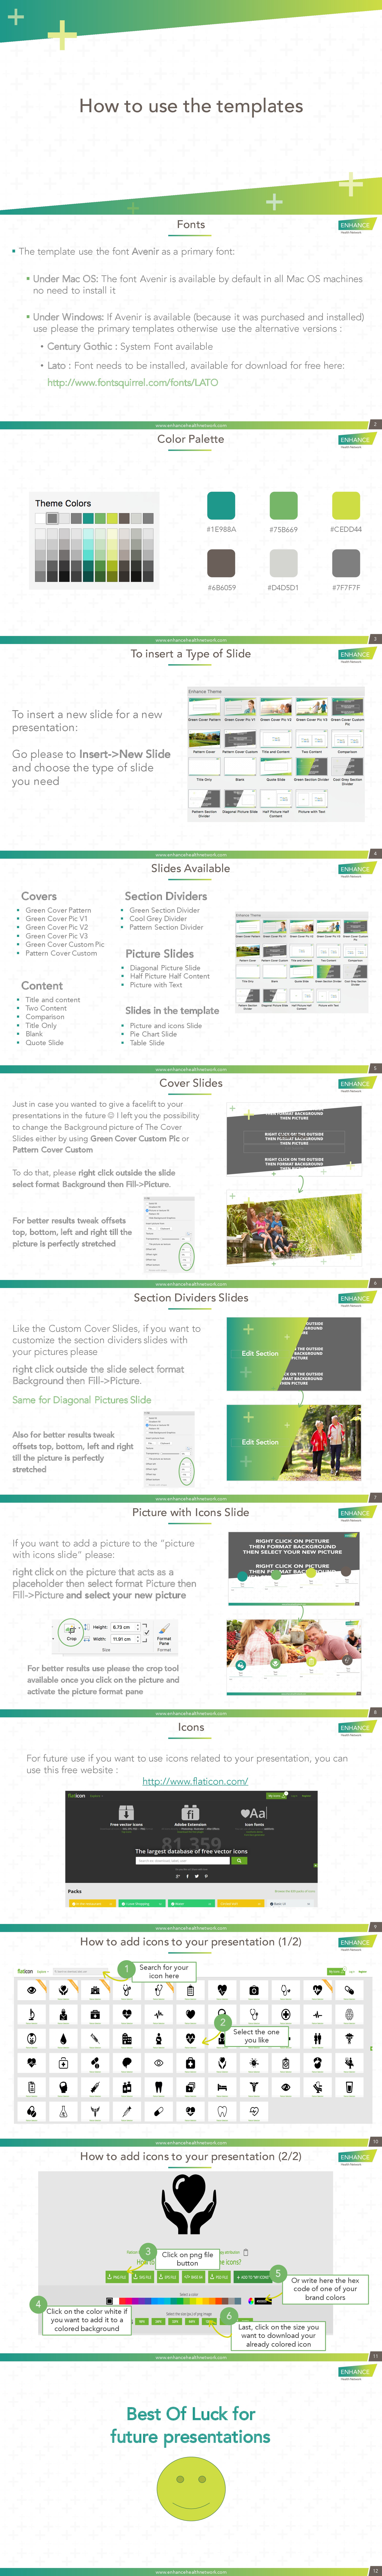 Create a compelling PowerPoint Template for a large healthcare organization